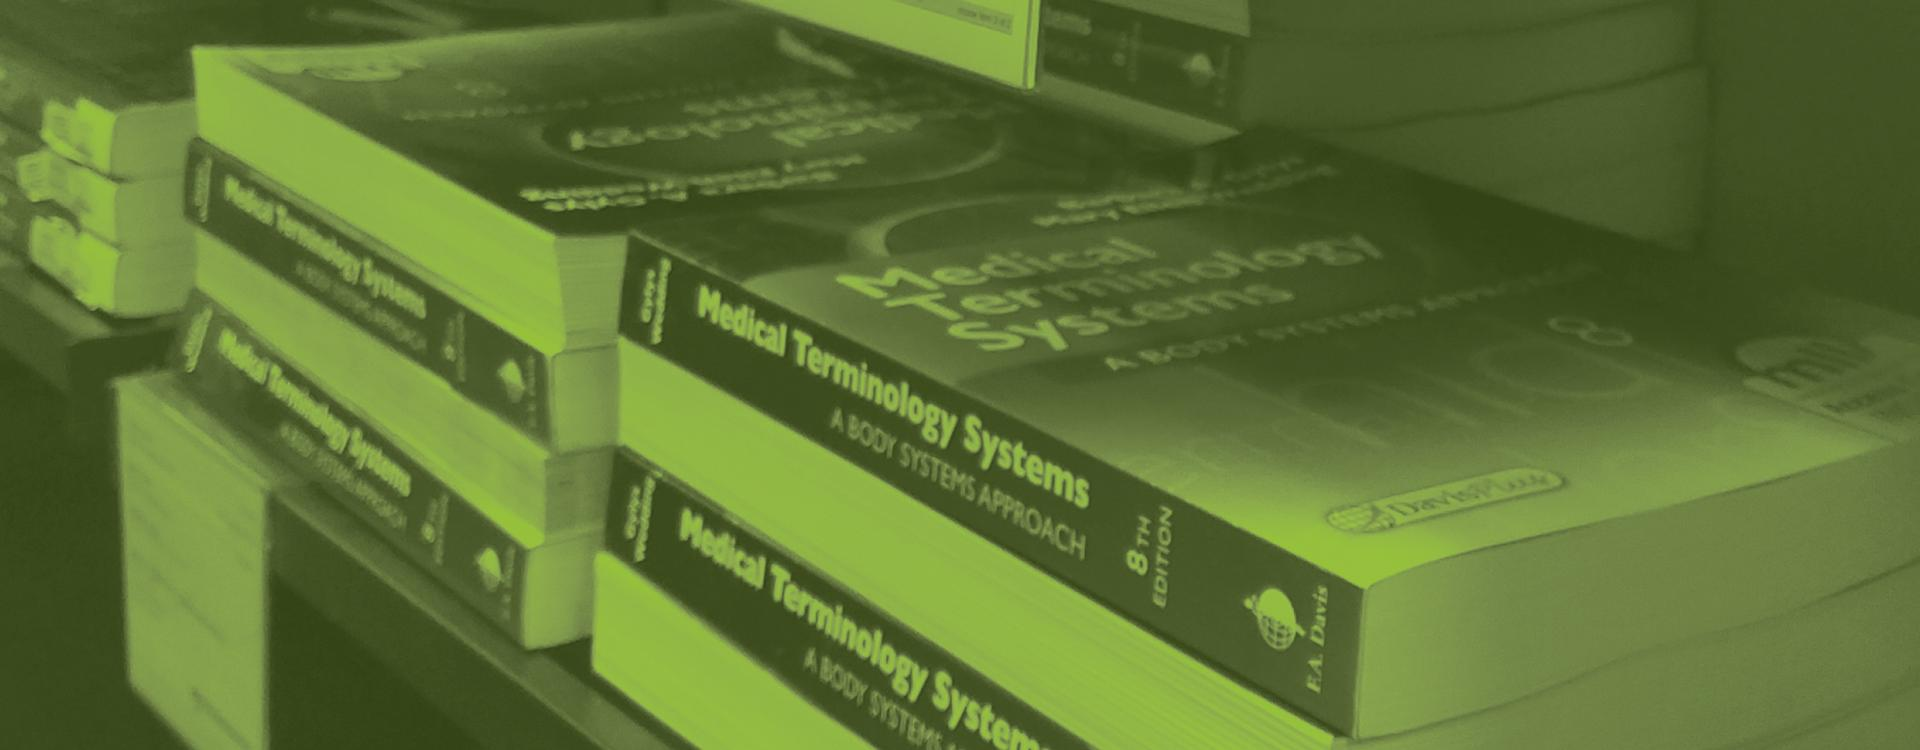 close up photo of textbooks